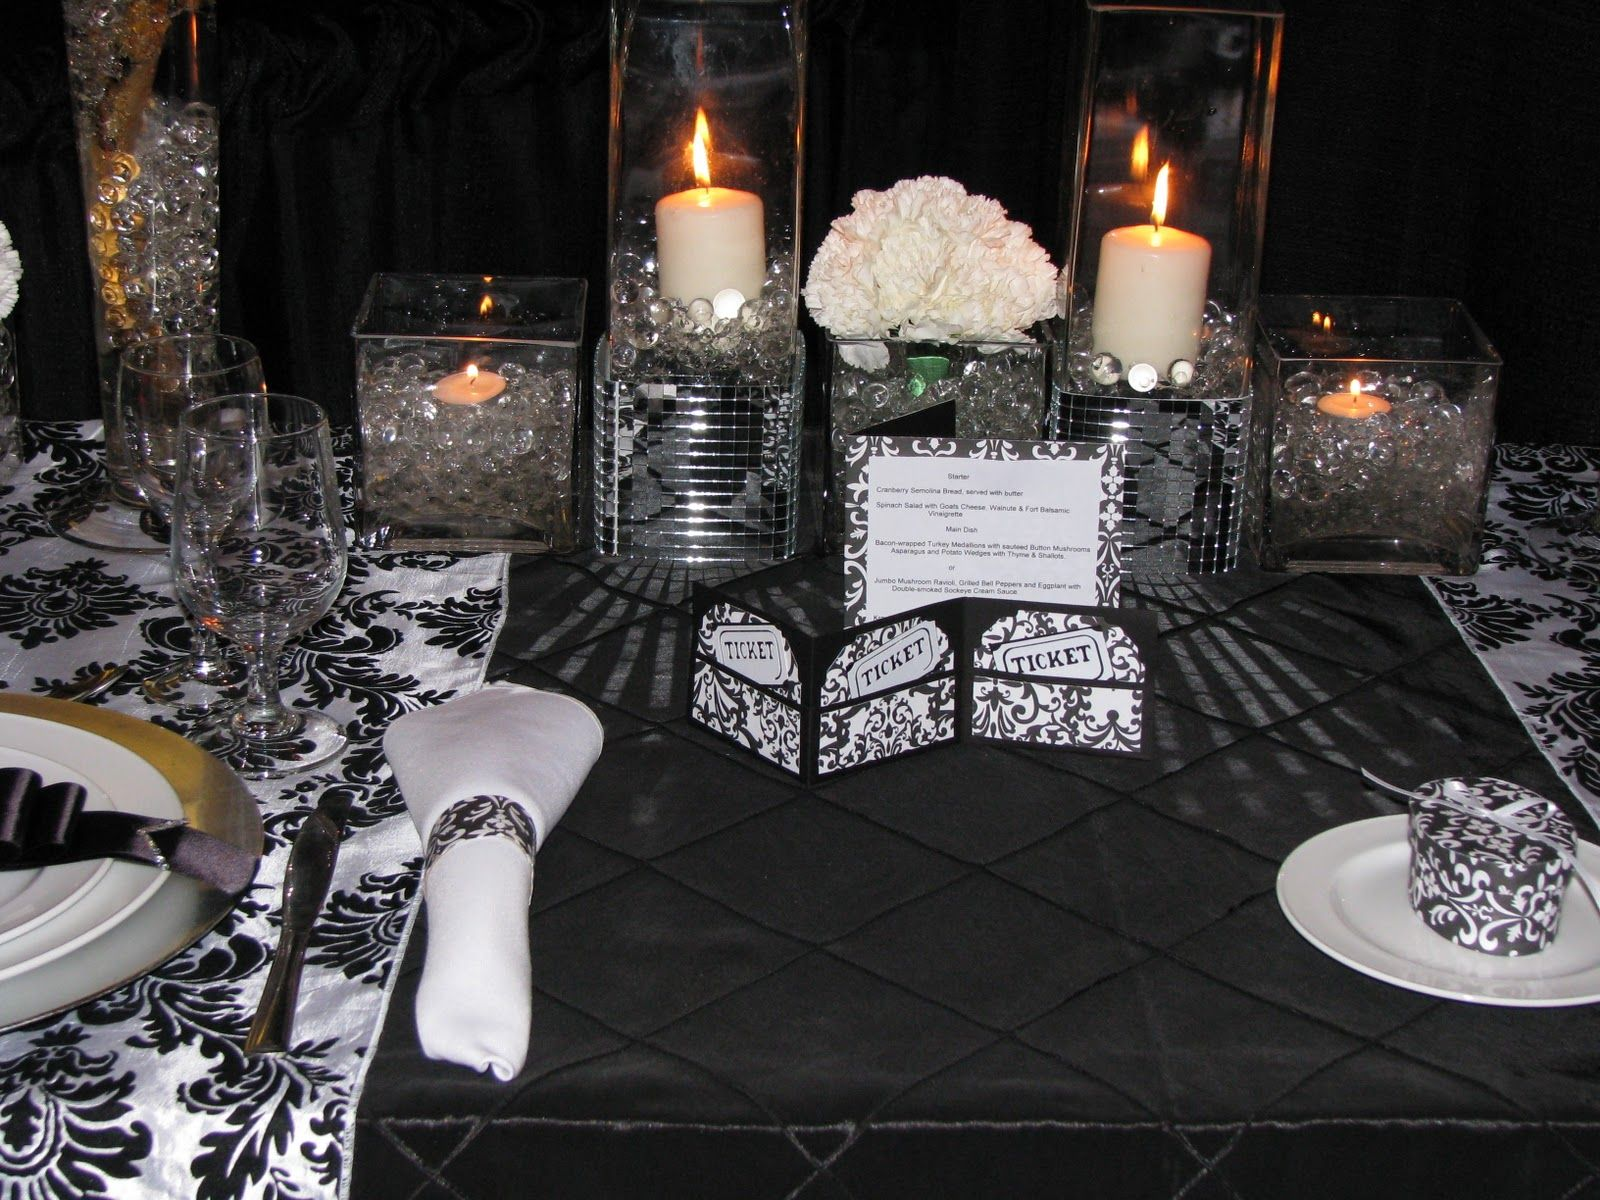 black and white and bling table setting | Black pintuck taffeta table covering with black u0026 & black and white and bling table setting | Black pintuck taffeta ...